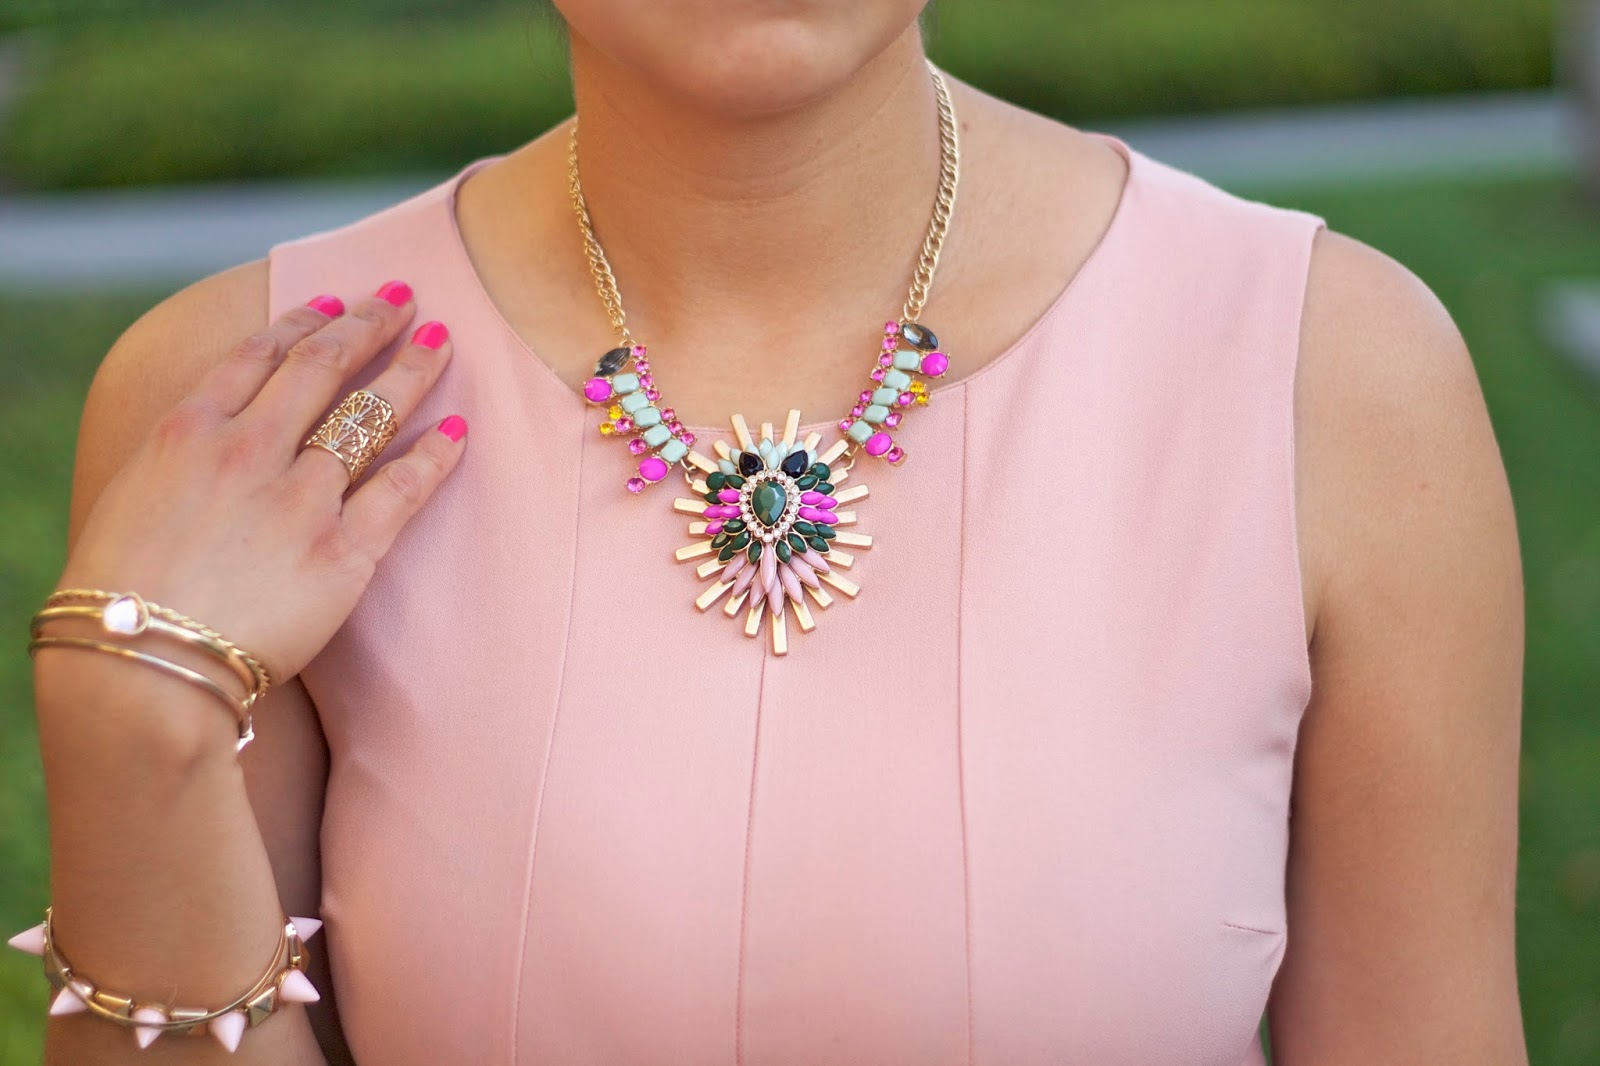 Pastel and Gold Accessories, Charlotte Russe gold bangles, TanyaKara Jewelry ring, Shop Prima Donna statement necklace